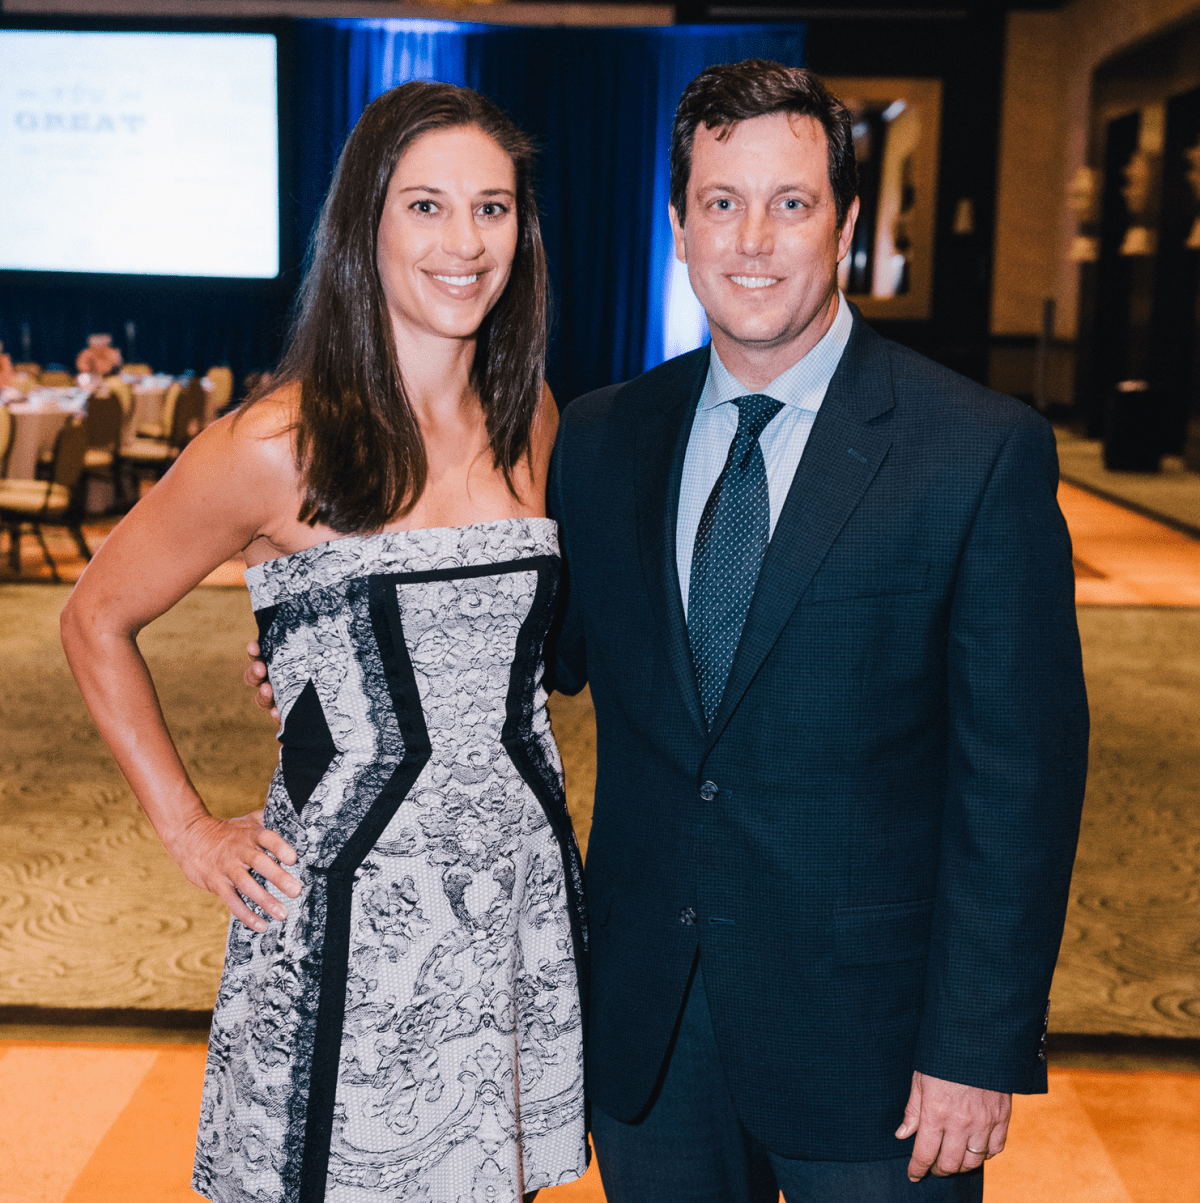 Houston, Boys & Girls Clubs' Great Futures Dinner, September 2015, Carli Lloyd, Chris Canetti